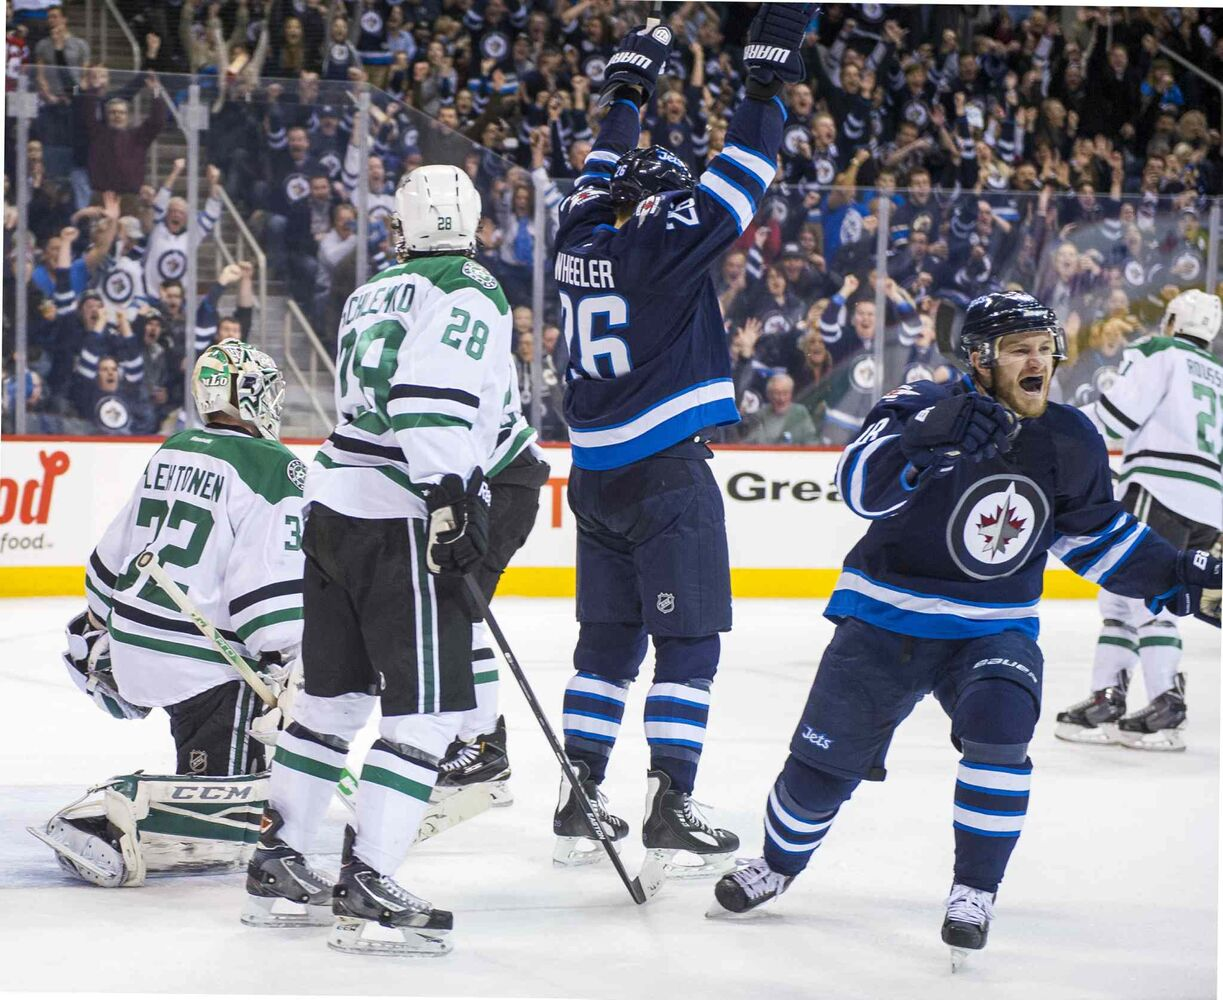 Winnipeg Jets  Bryan Little (#18) and Blake Wheeler (#26) celebrate Andrew Ladd's second-period goal against the Dallas Stars Saturday. (David Lipnowski / Winnipeg Free Press)